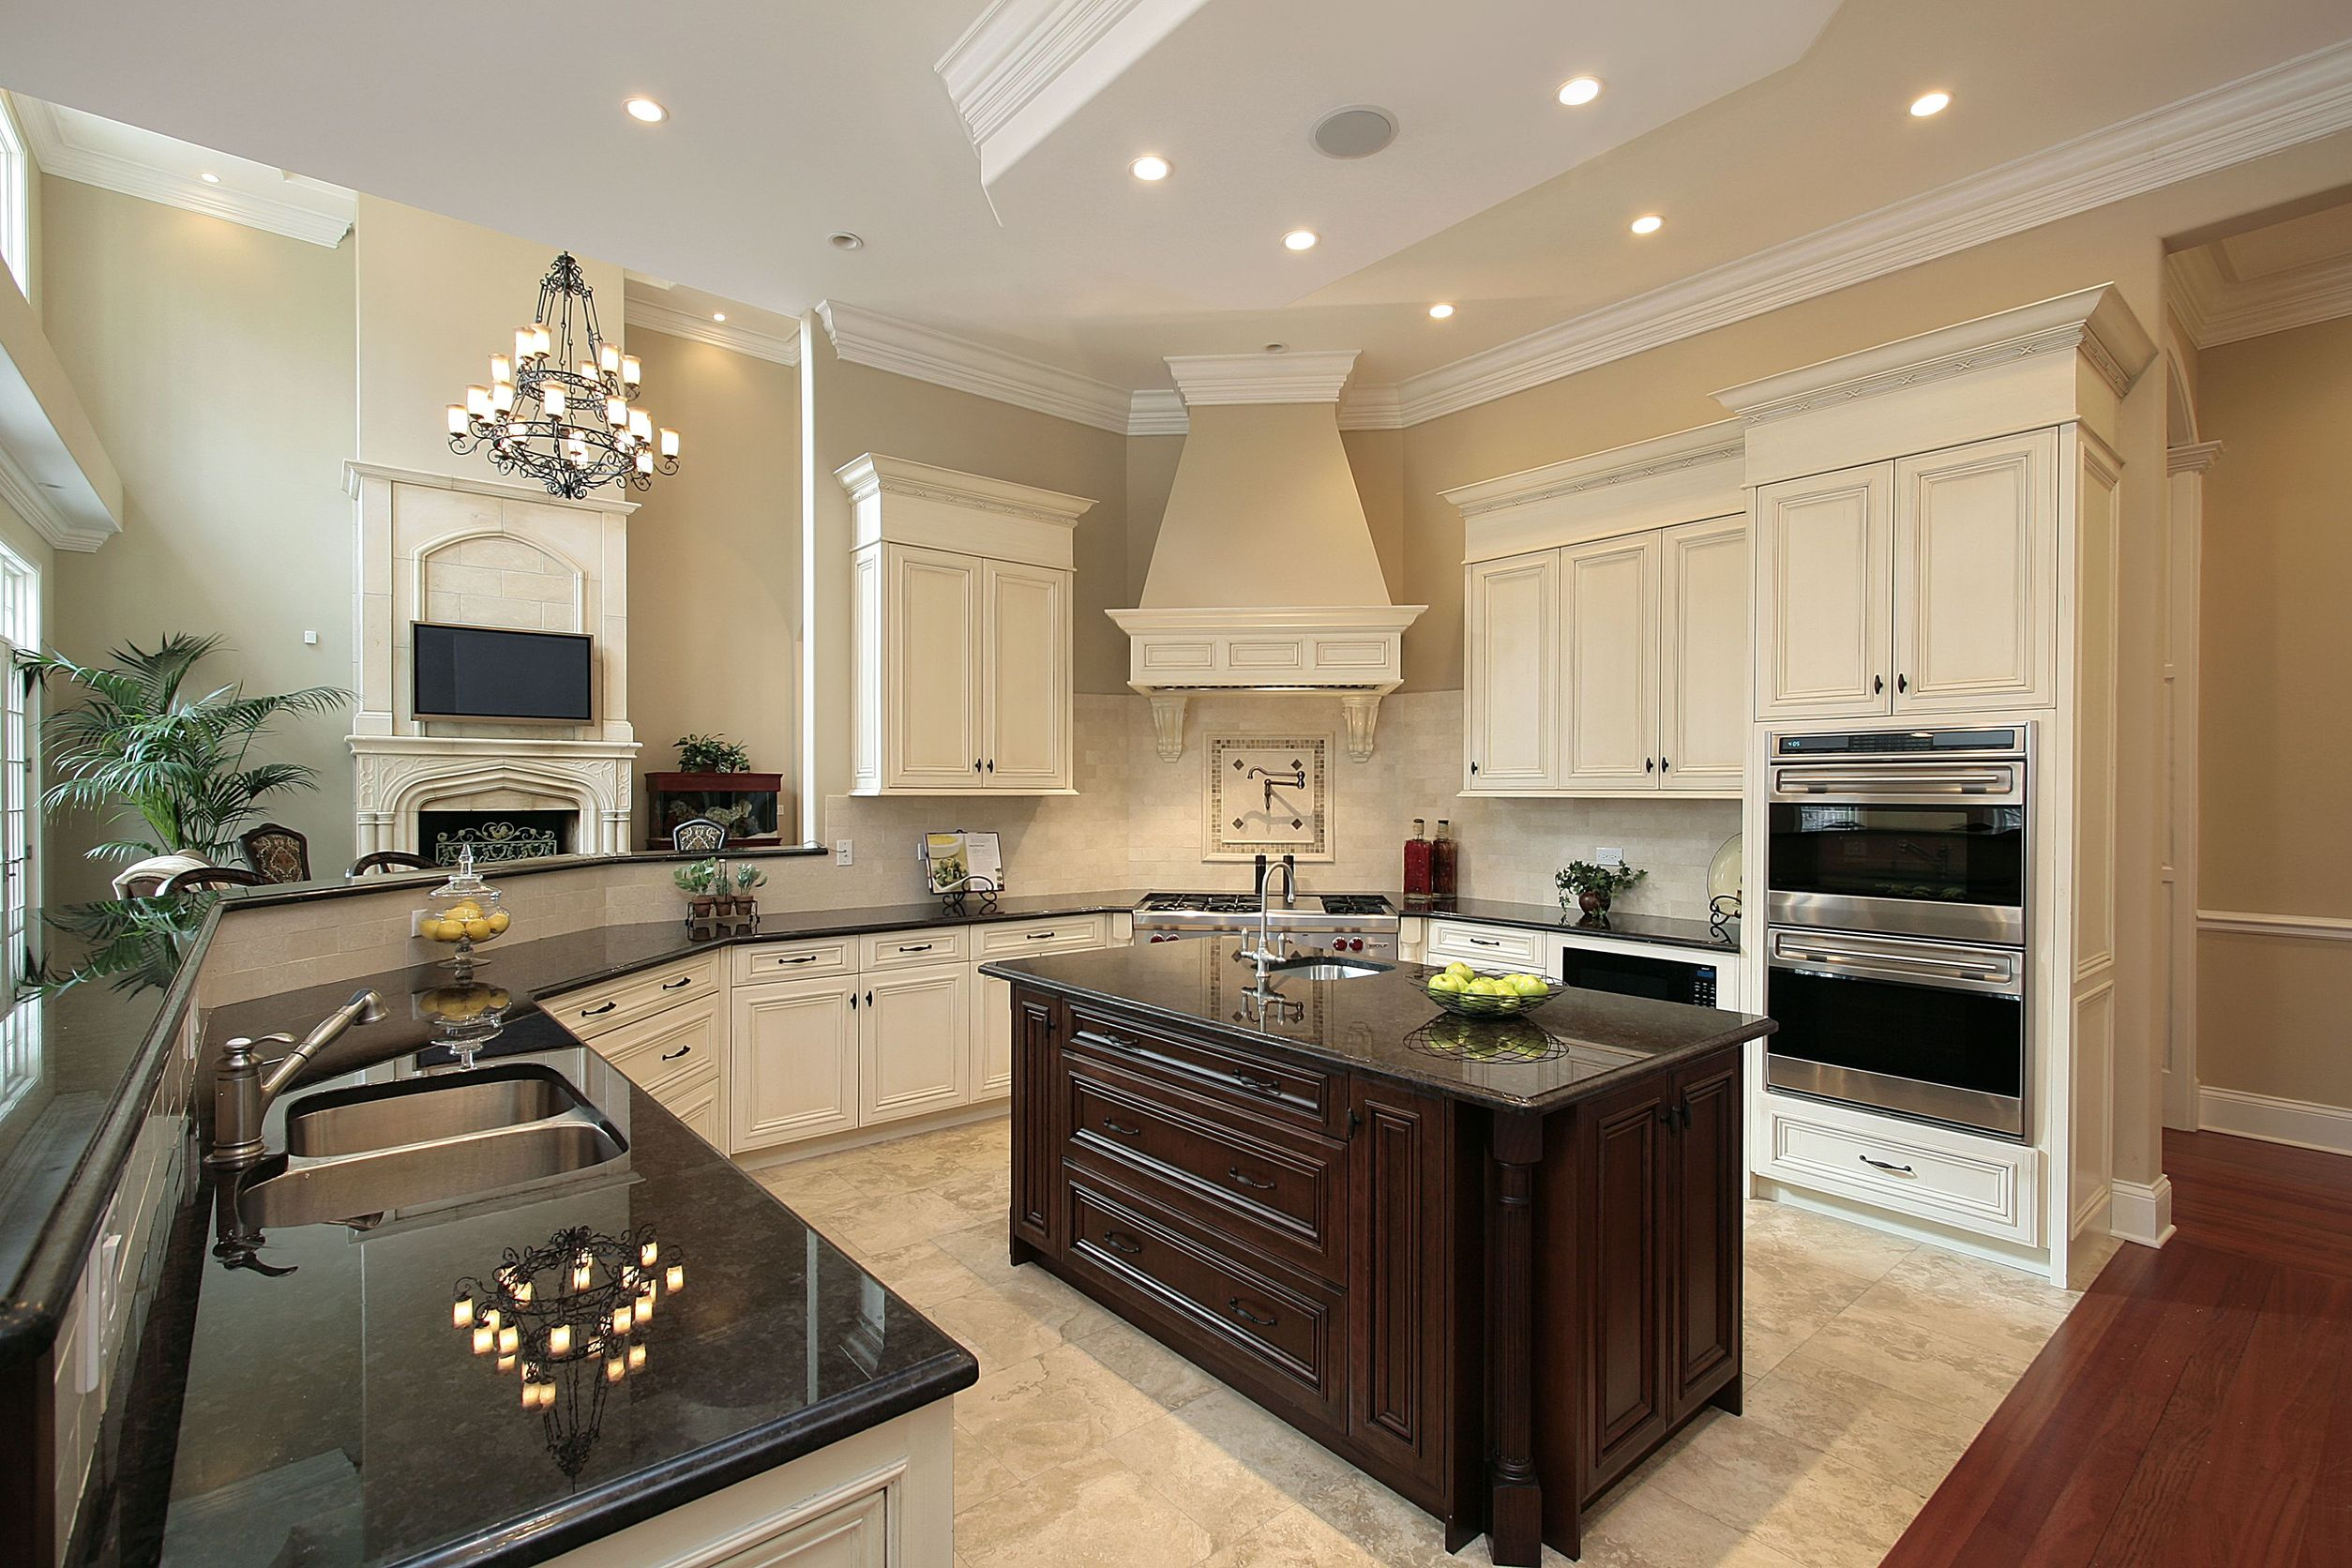 Remodeling Contractors in Chicago Can Give Your Home a New Look at a Very Reasonable Price